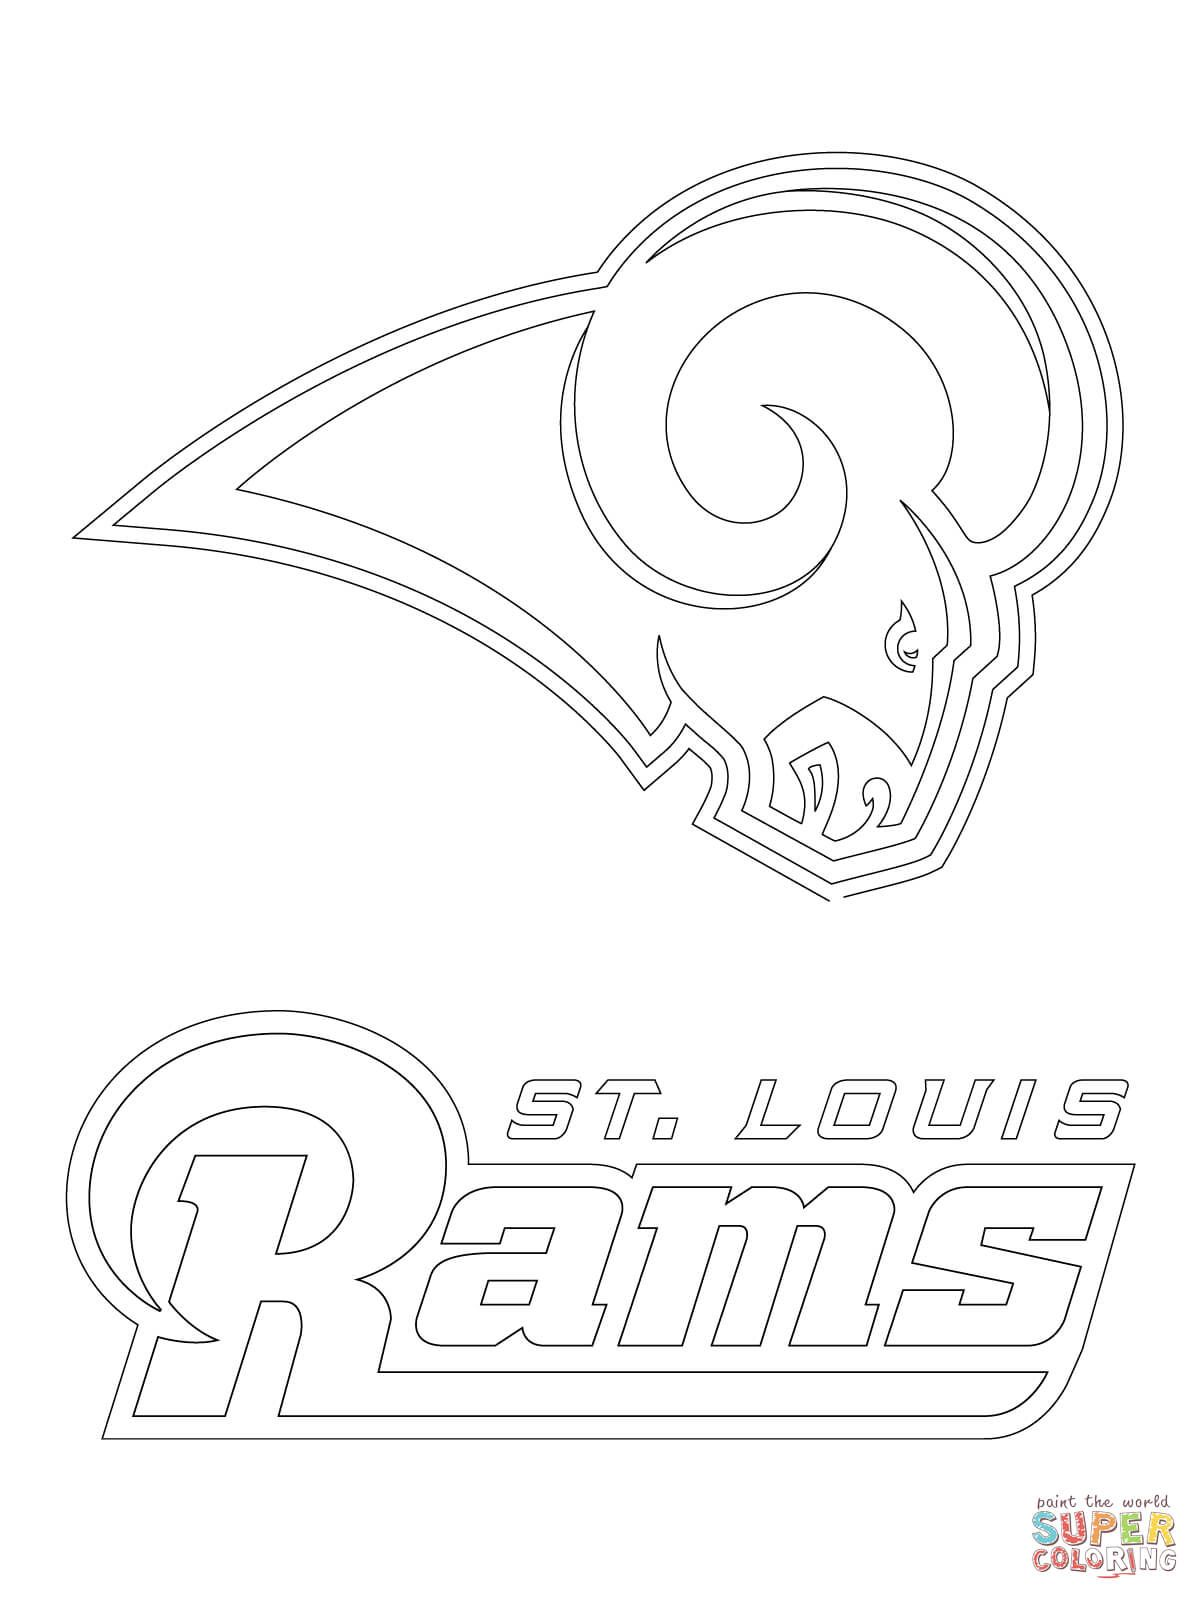 St. Louis Rams Logo coloring page | Free Printable Coloring Pages ...